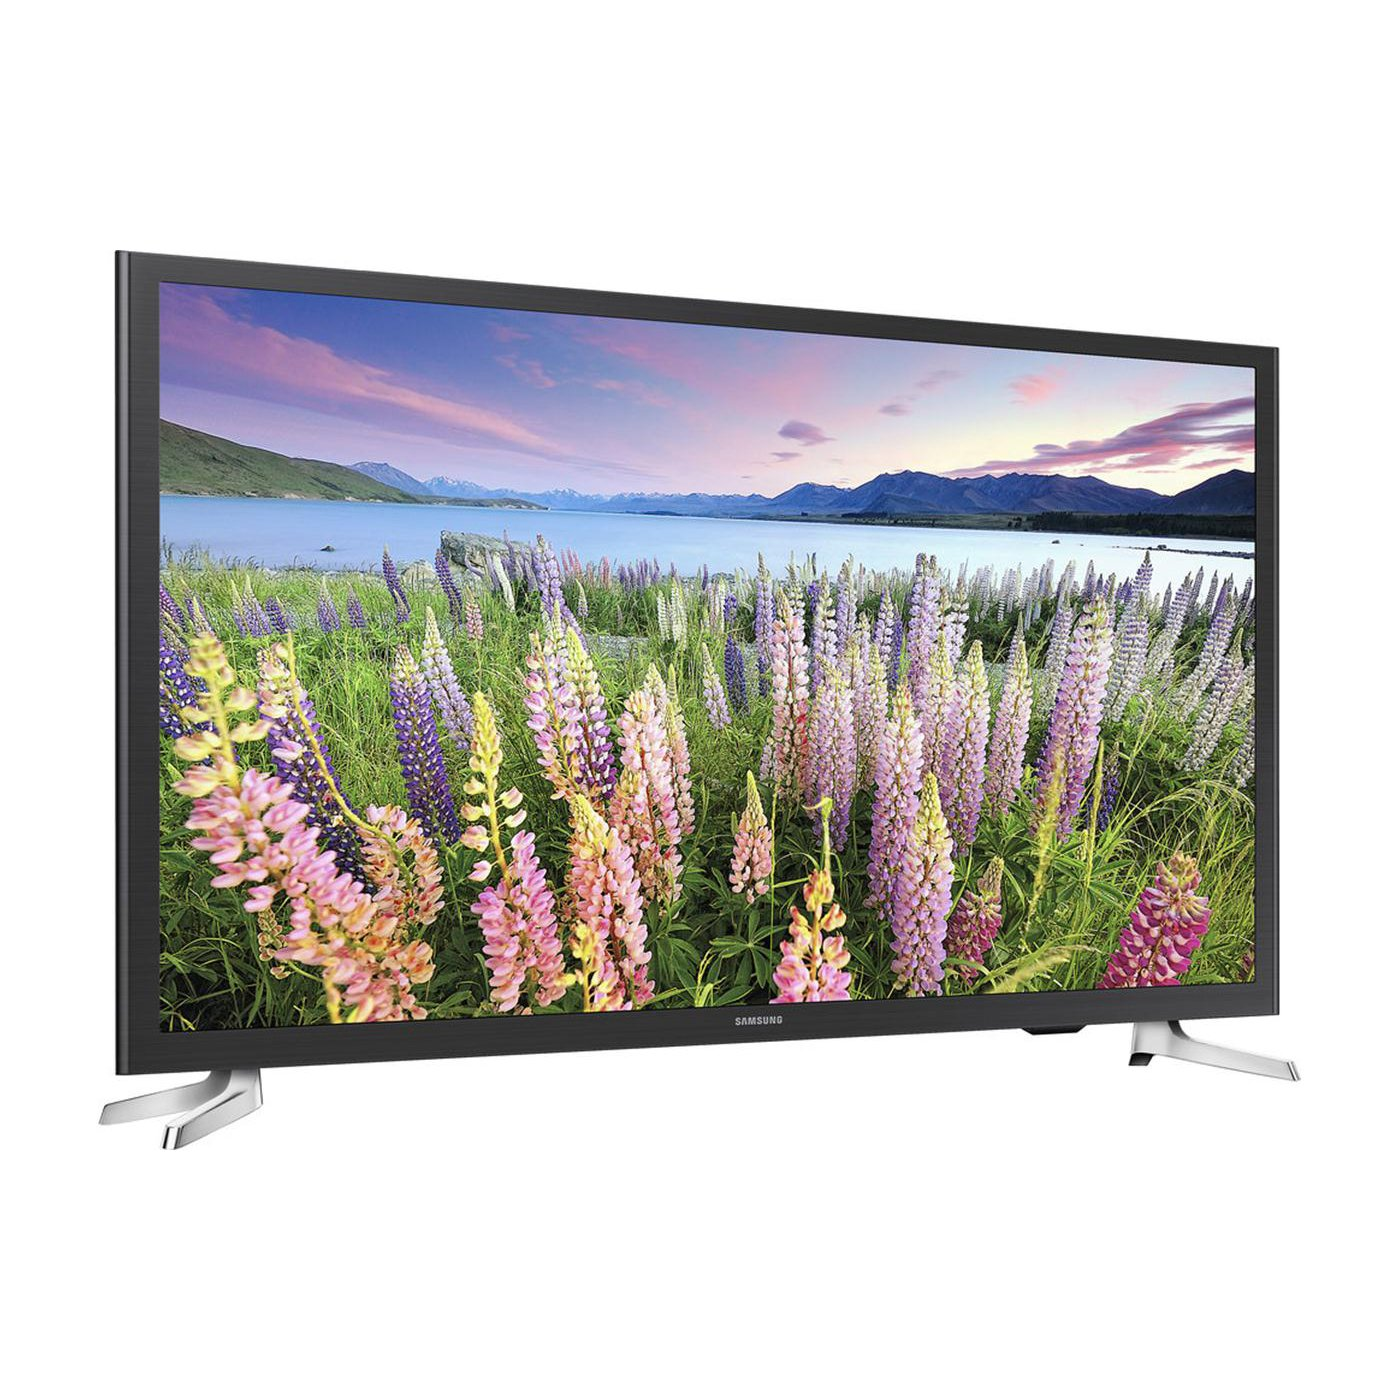 samsung un32j5205 32 inch 1080p smart led tv ebay. Black Bedroom Furniture Sets. Home Design Ideas